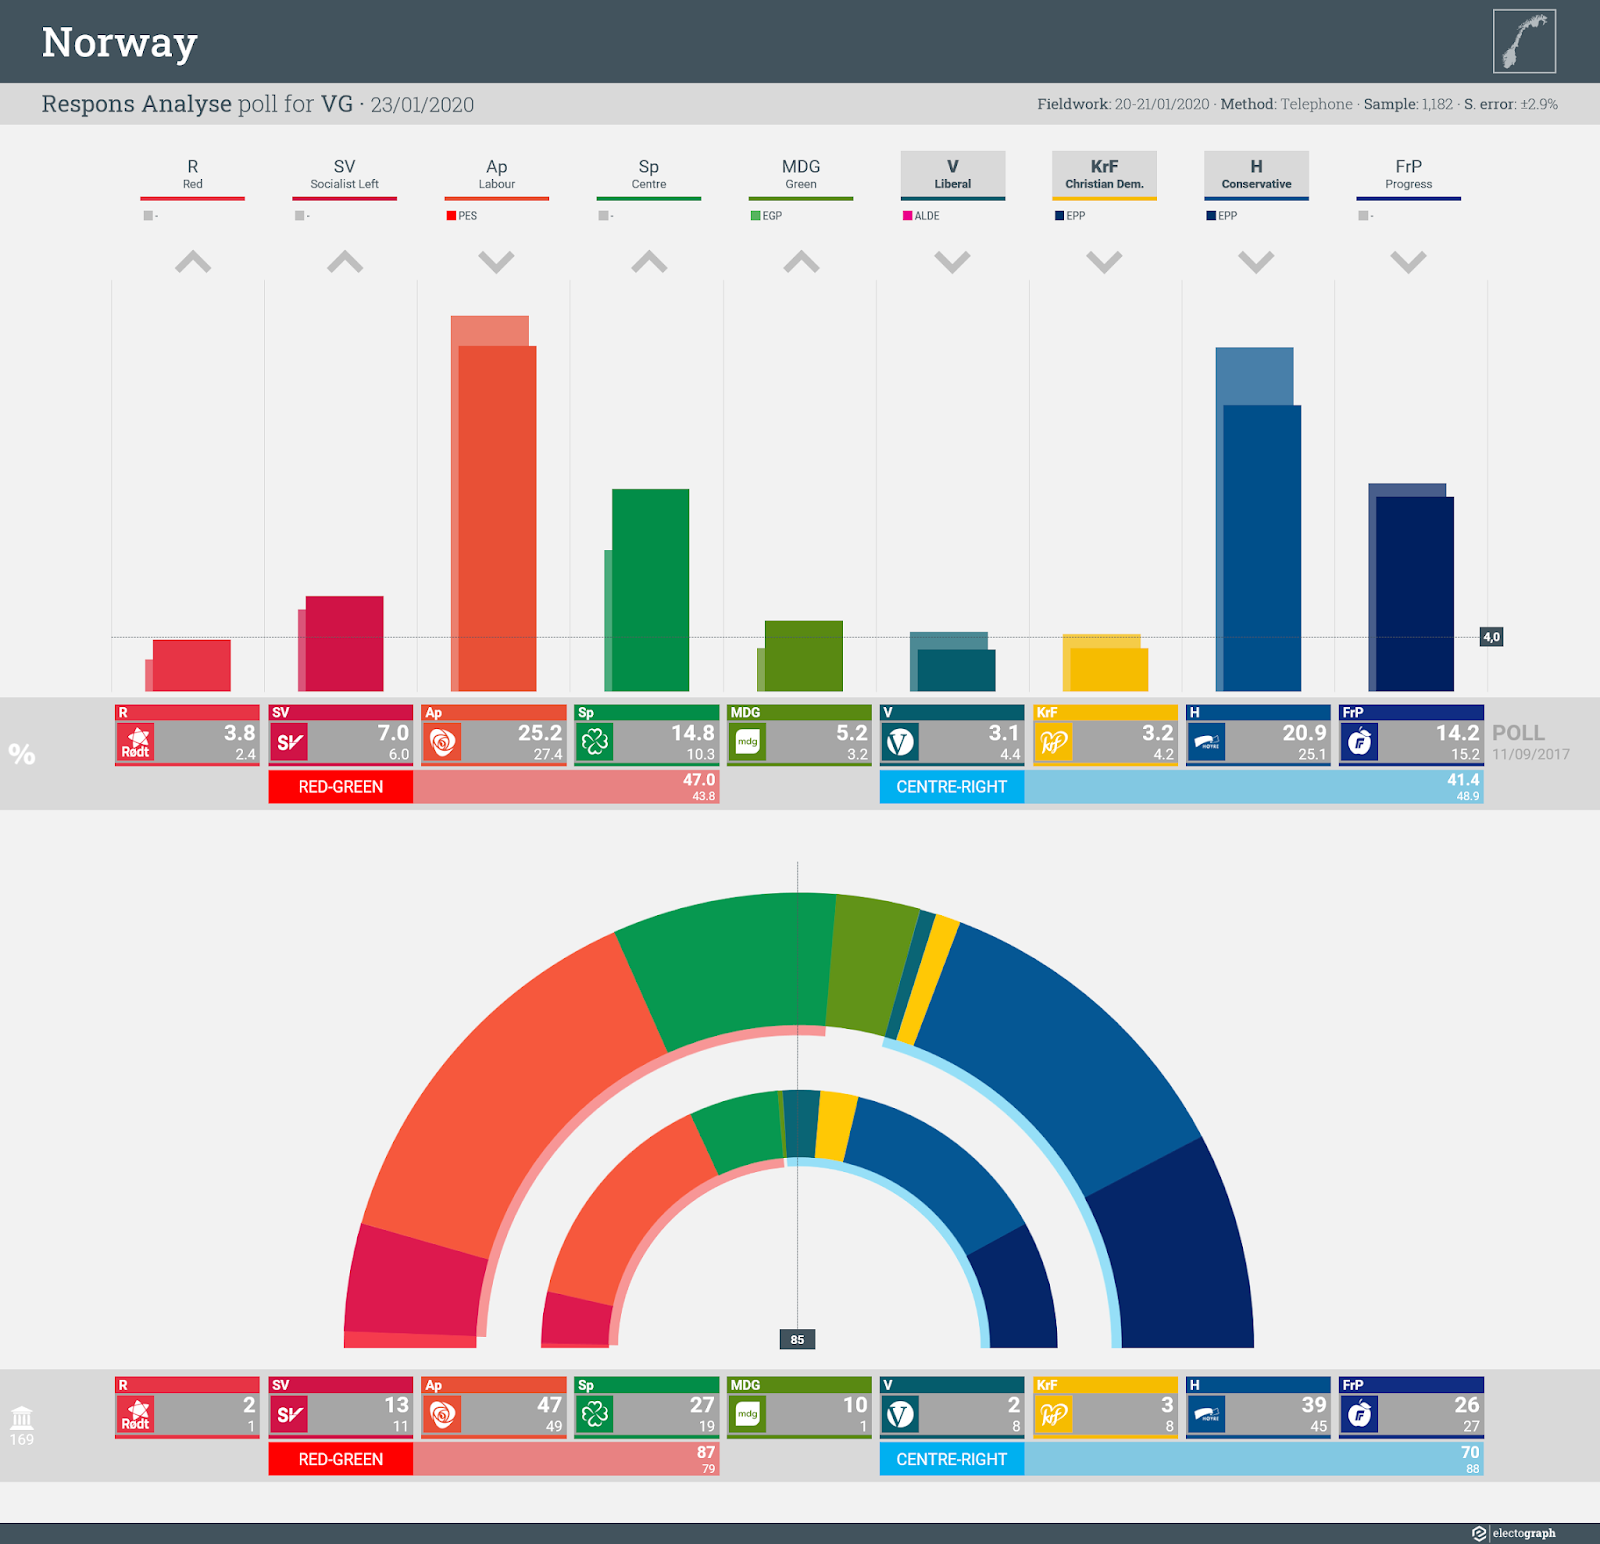 NORWAY: Respons Analyse poll chart for VG, 23 January 2020